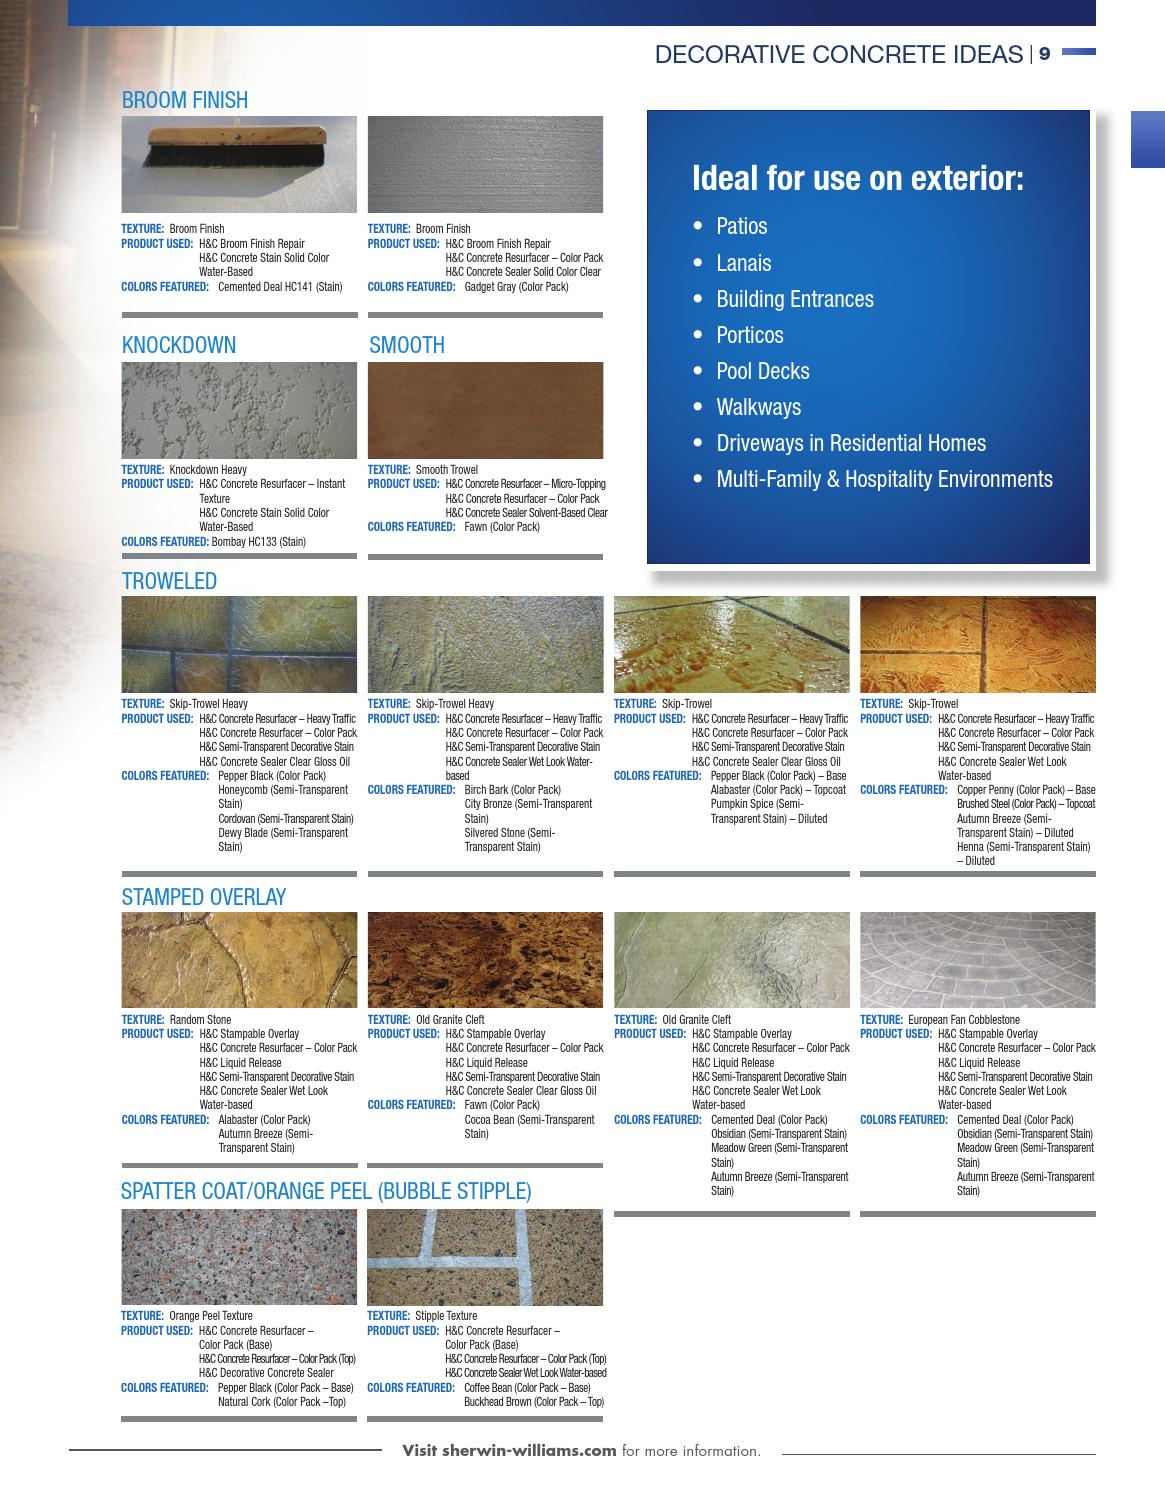 Sherwin Williams Concrete Catalog By Sherwin Williams Issuu